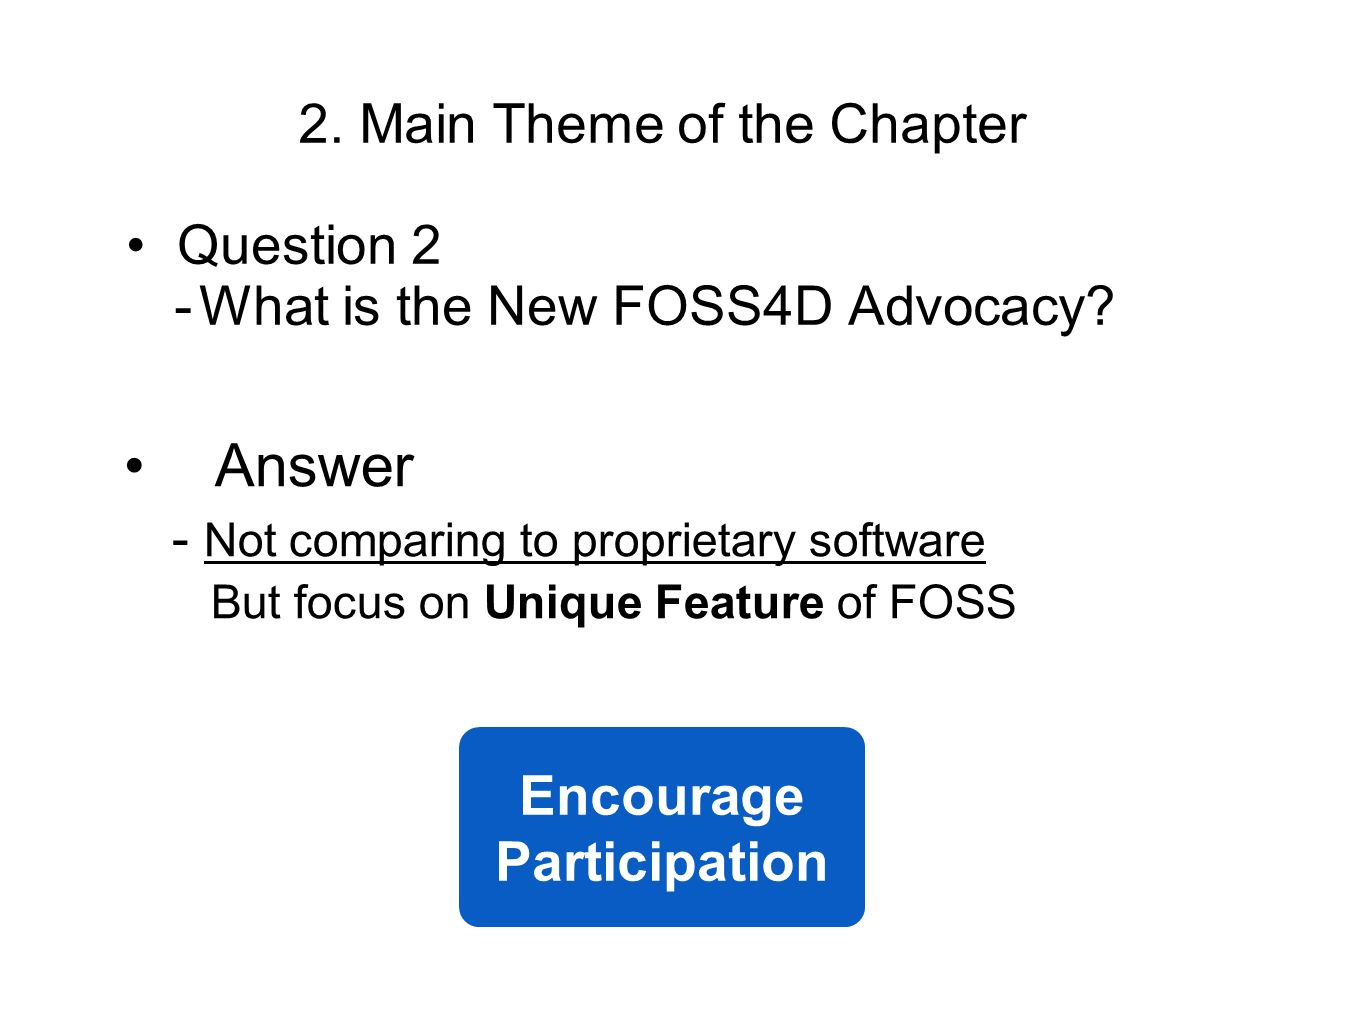 Question 2 What is the New FOSS4D Advocacy? Answer - Not comparing to proprietary software But focus on Unique Feature of FOSS Encourage Participation